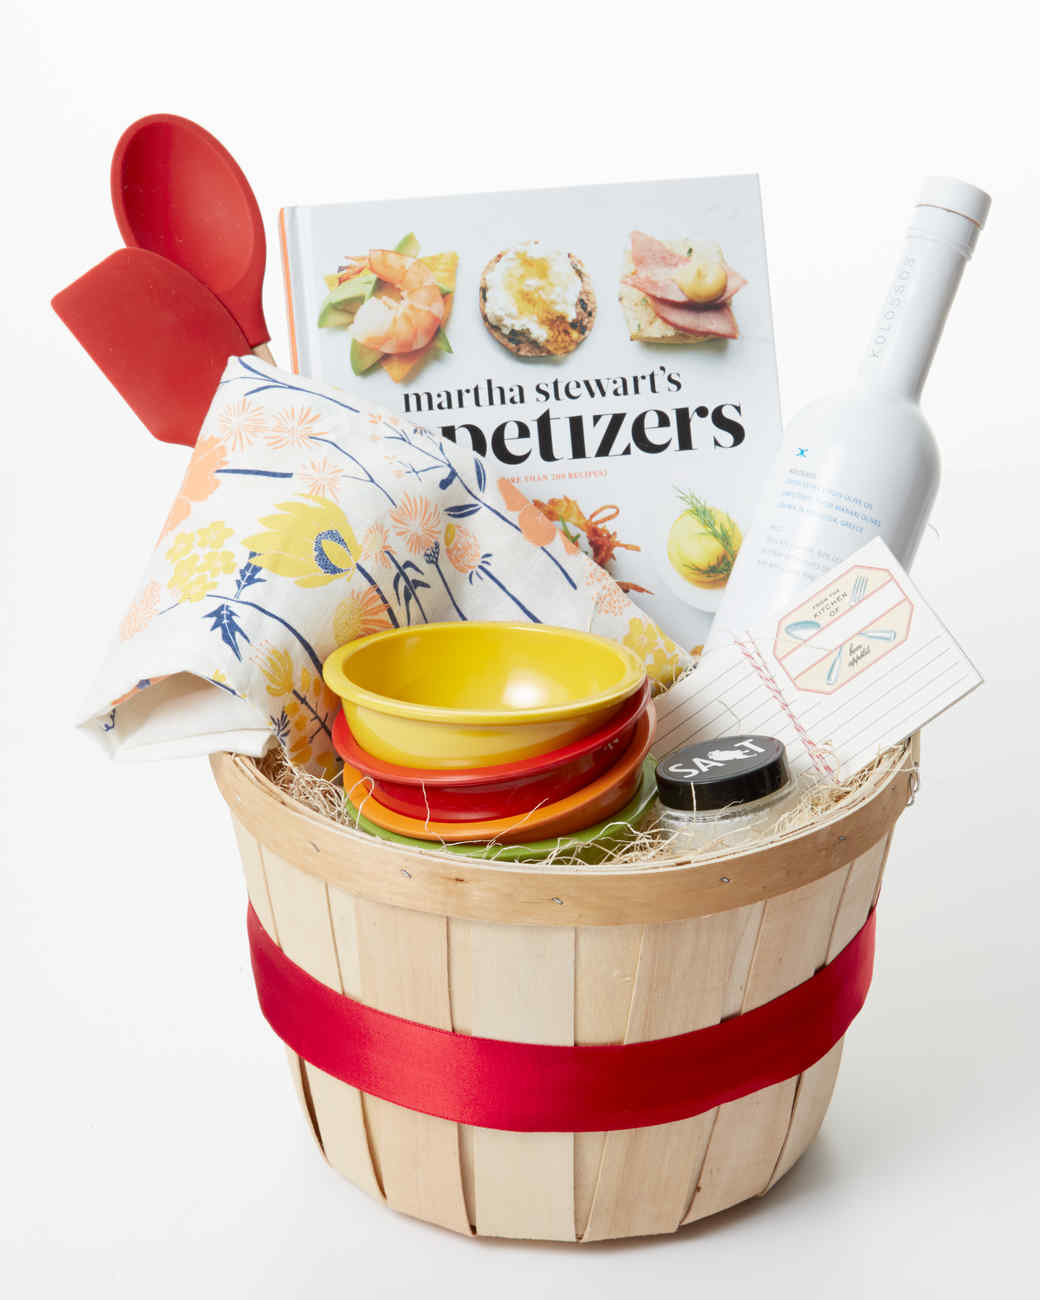 Kitchen Gift Baskets: 31 Awesome Easter Basket Ideas